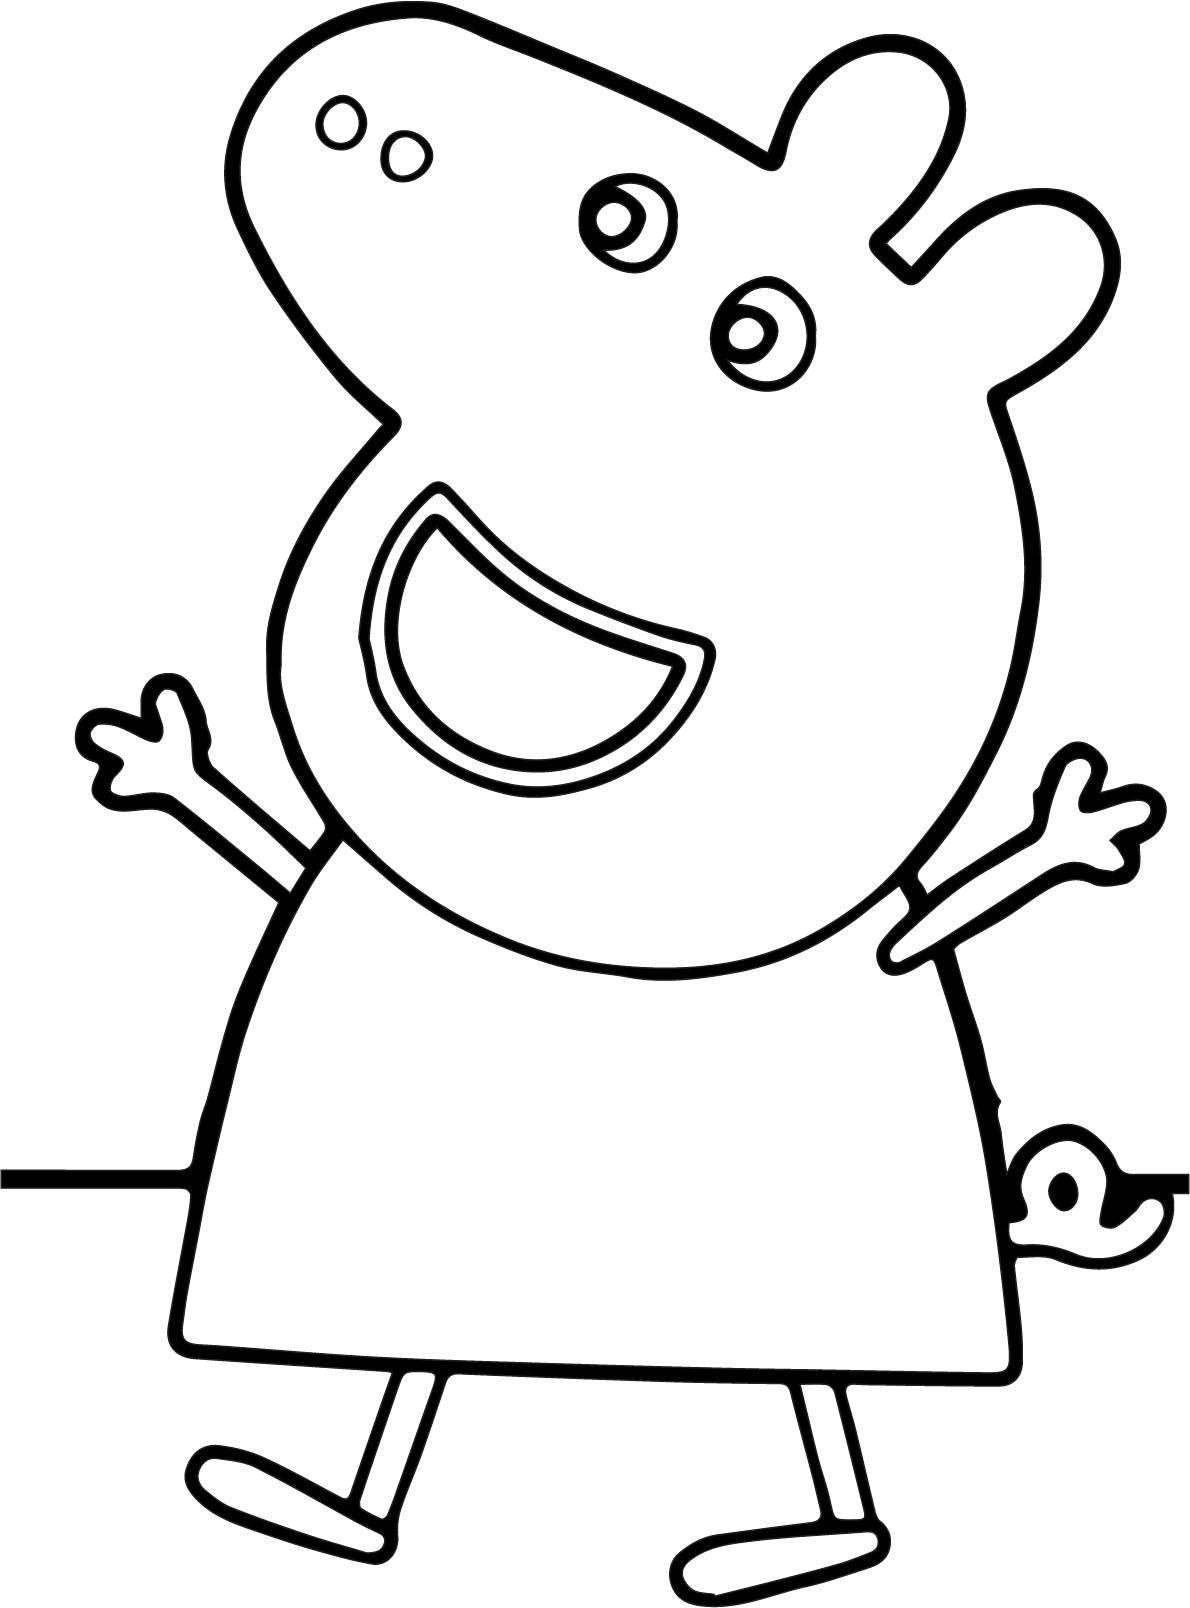 peppa pig coloring pages - peppa pig happy coloring page